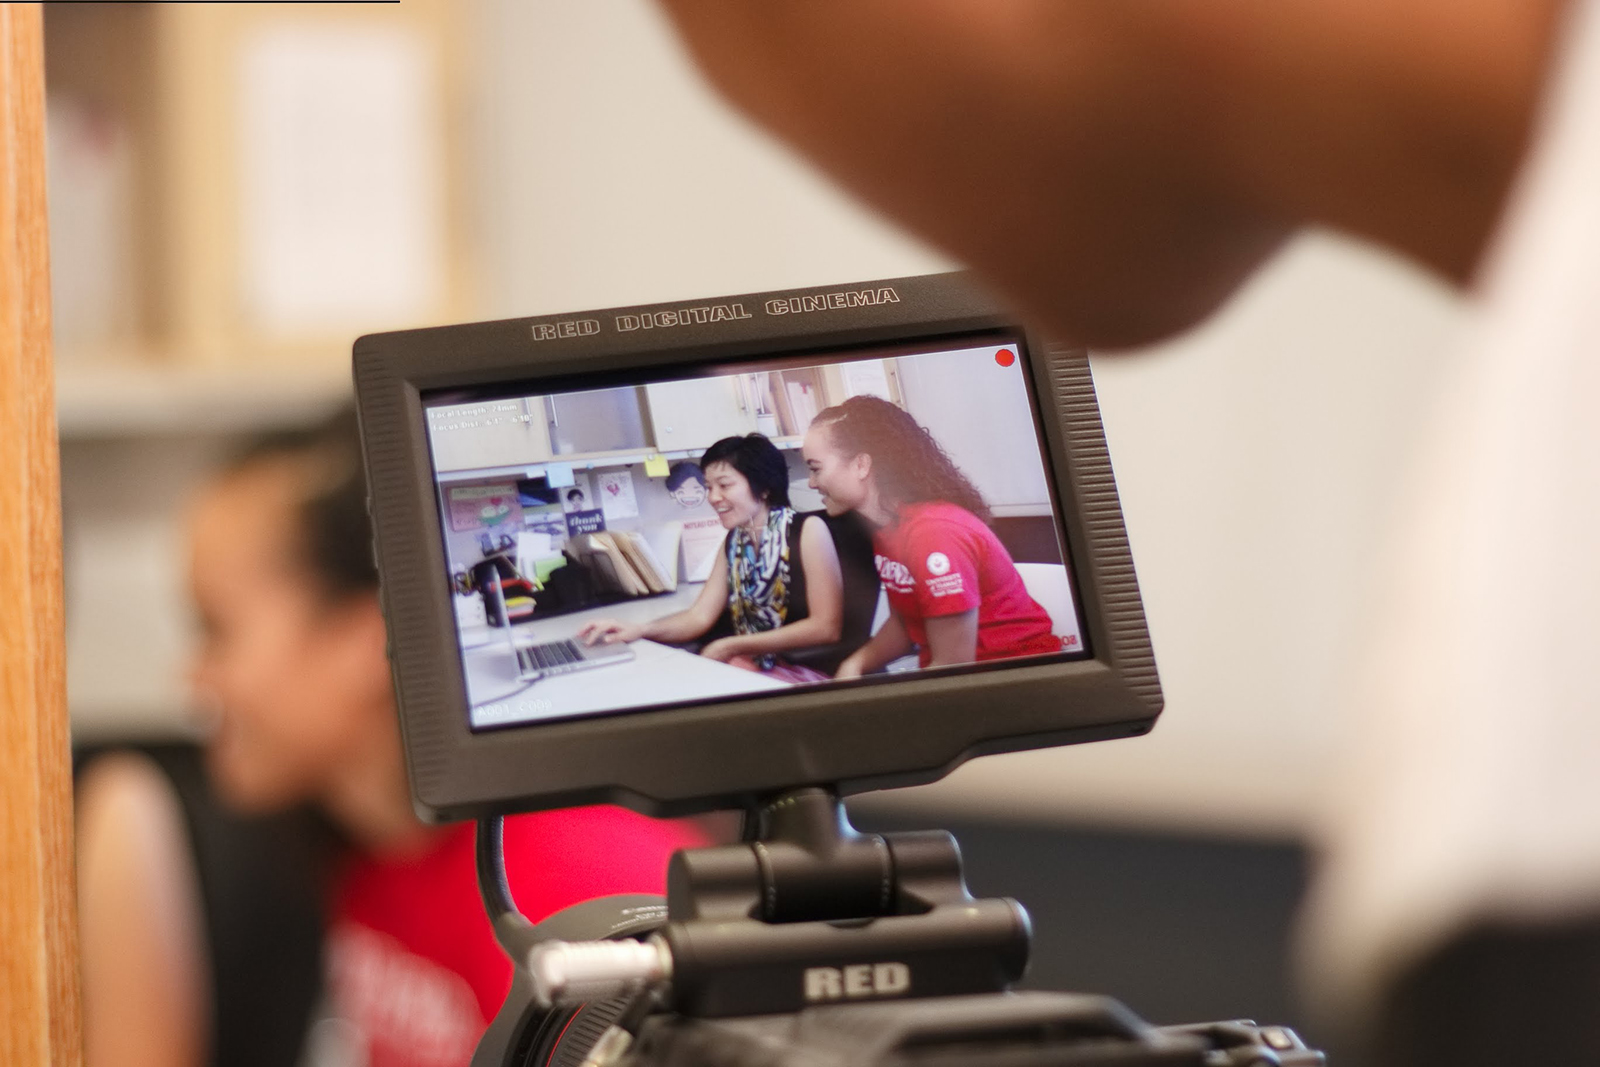 A student and a tutor seen through a camera viewfinder.